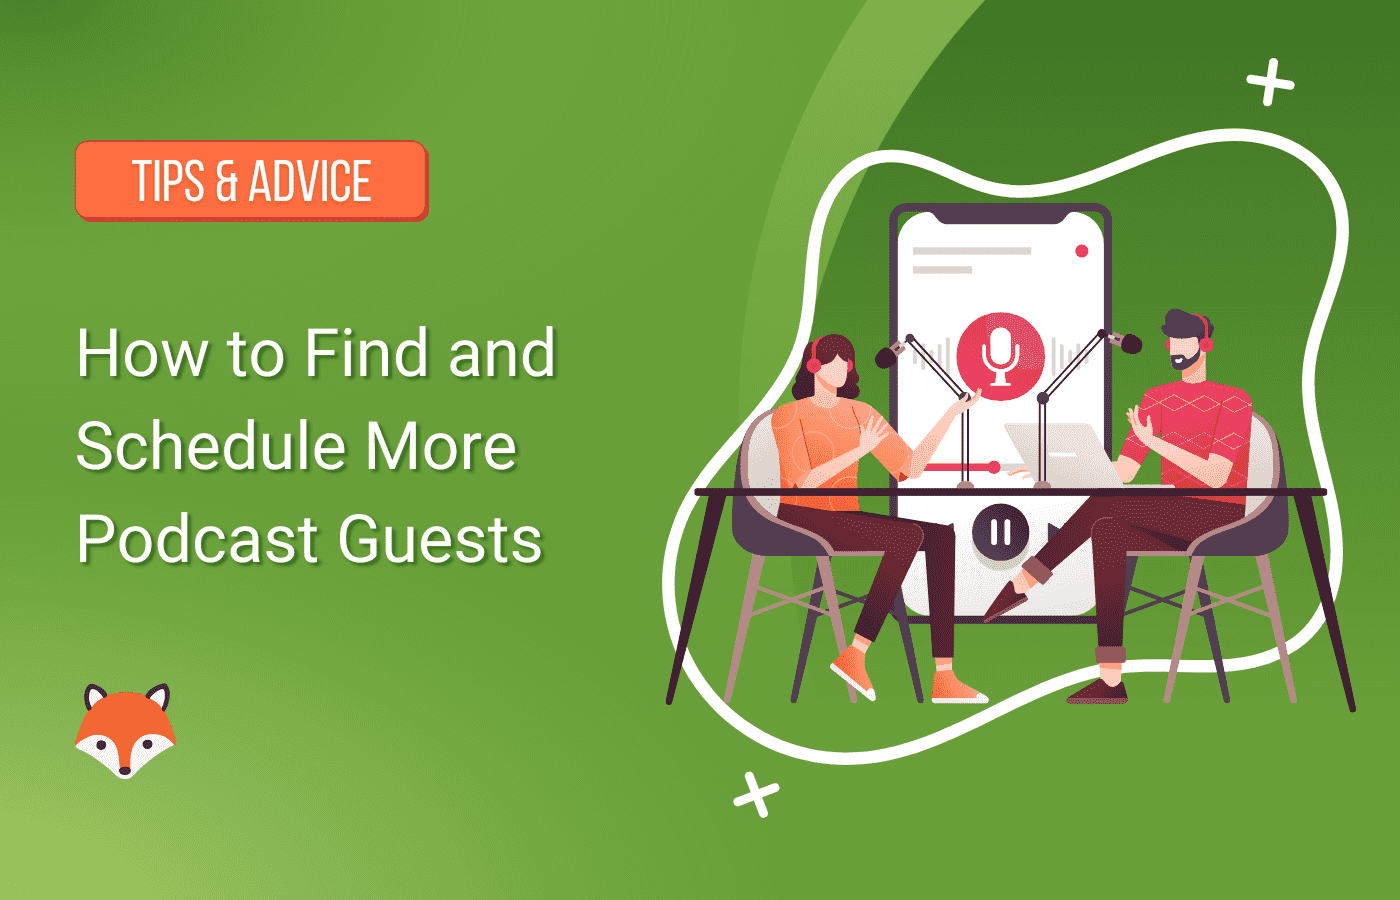 How to Find and Schedule More Podcast Guests